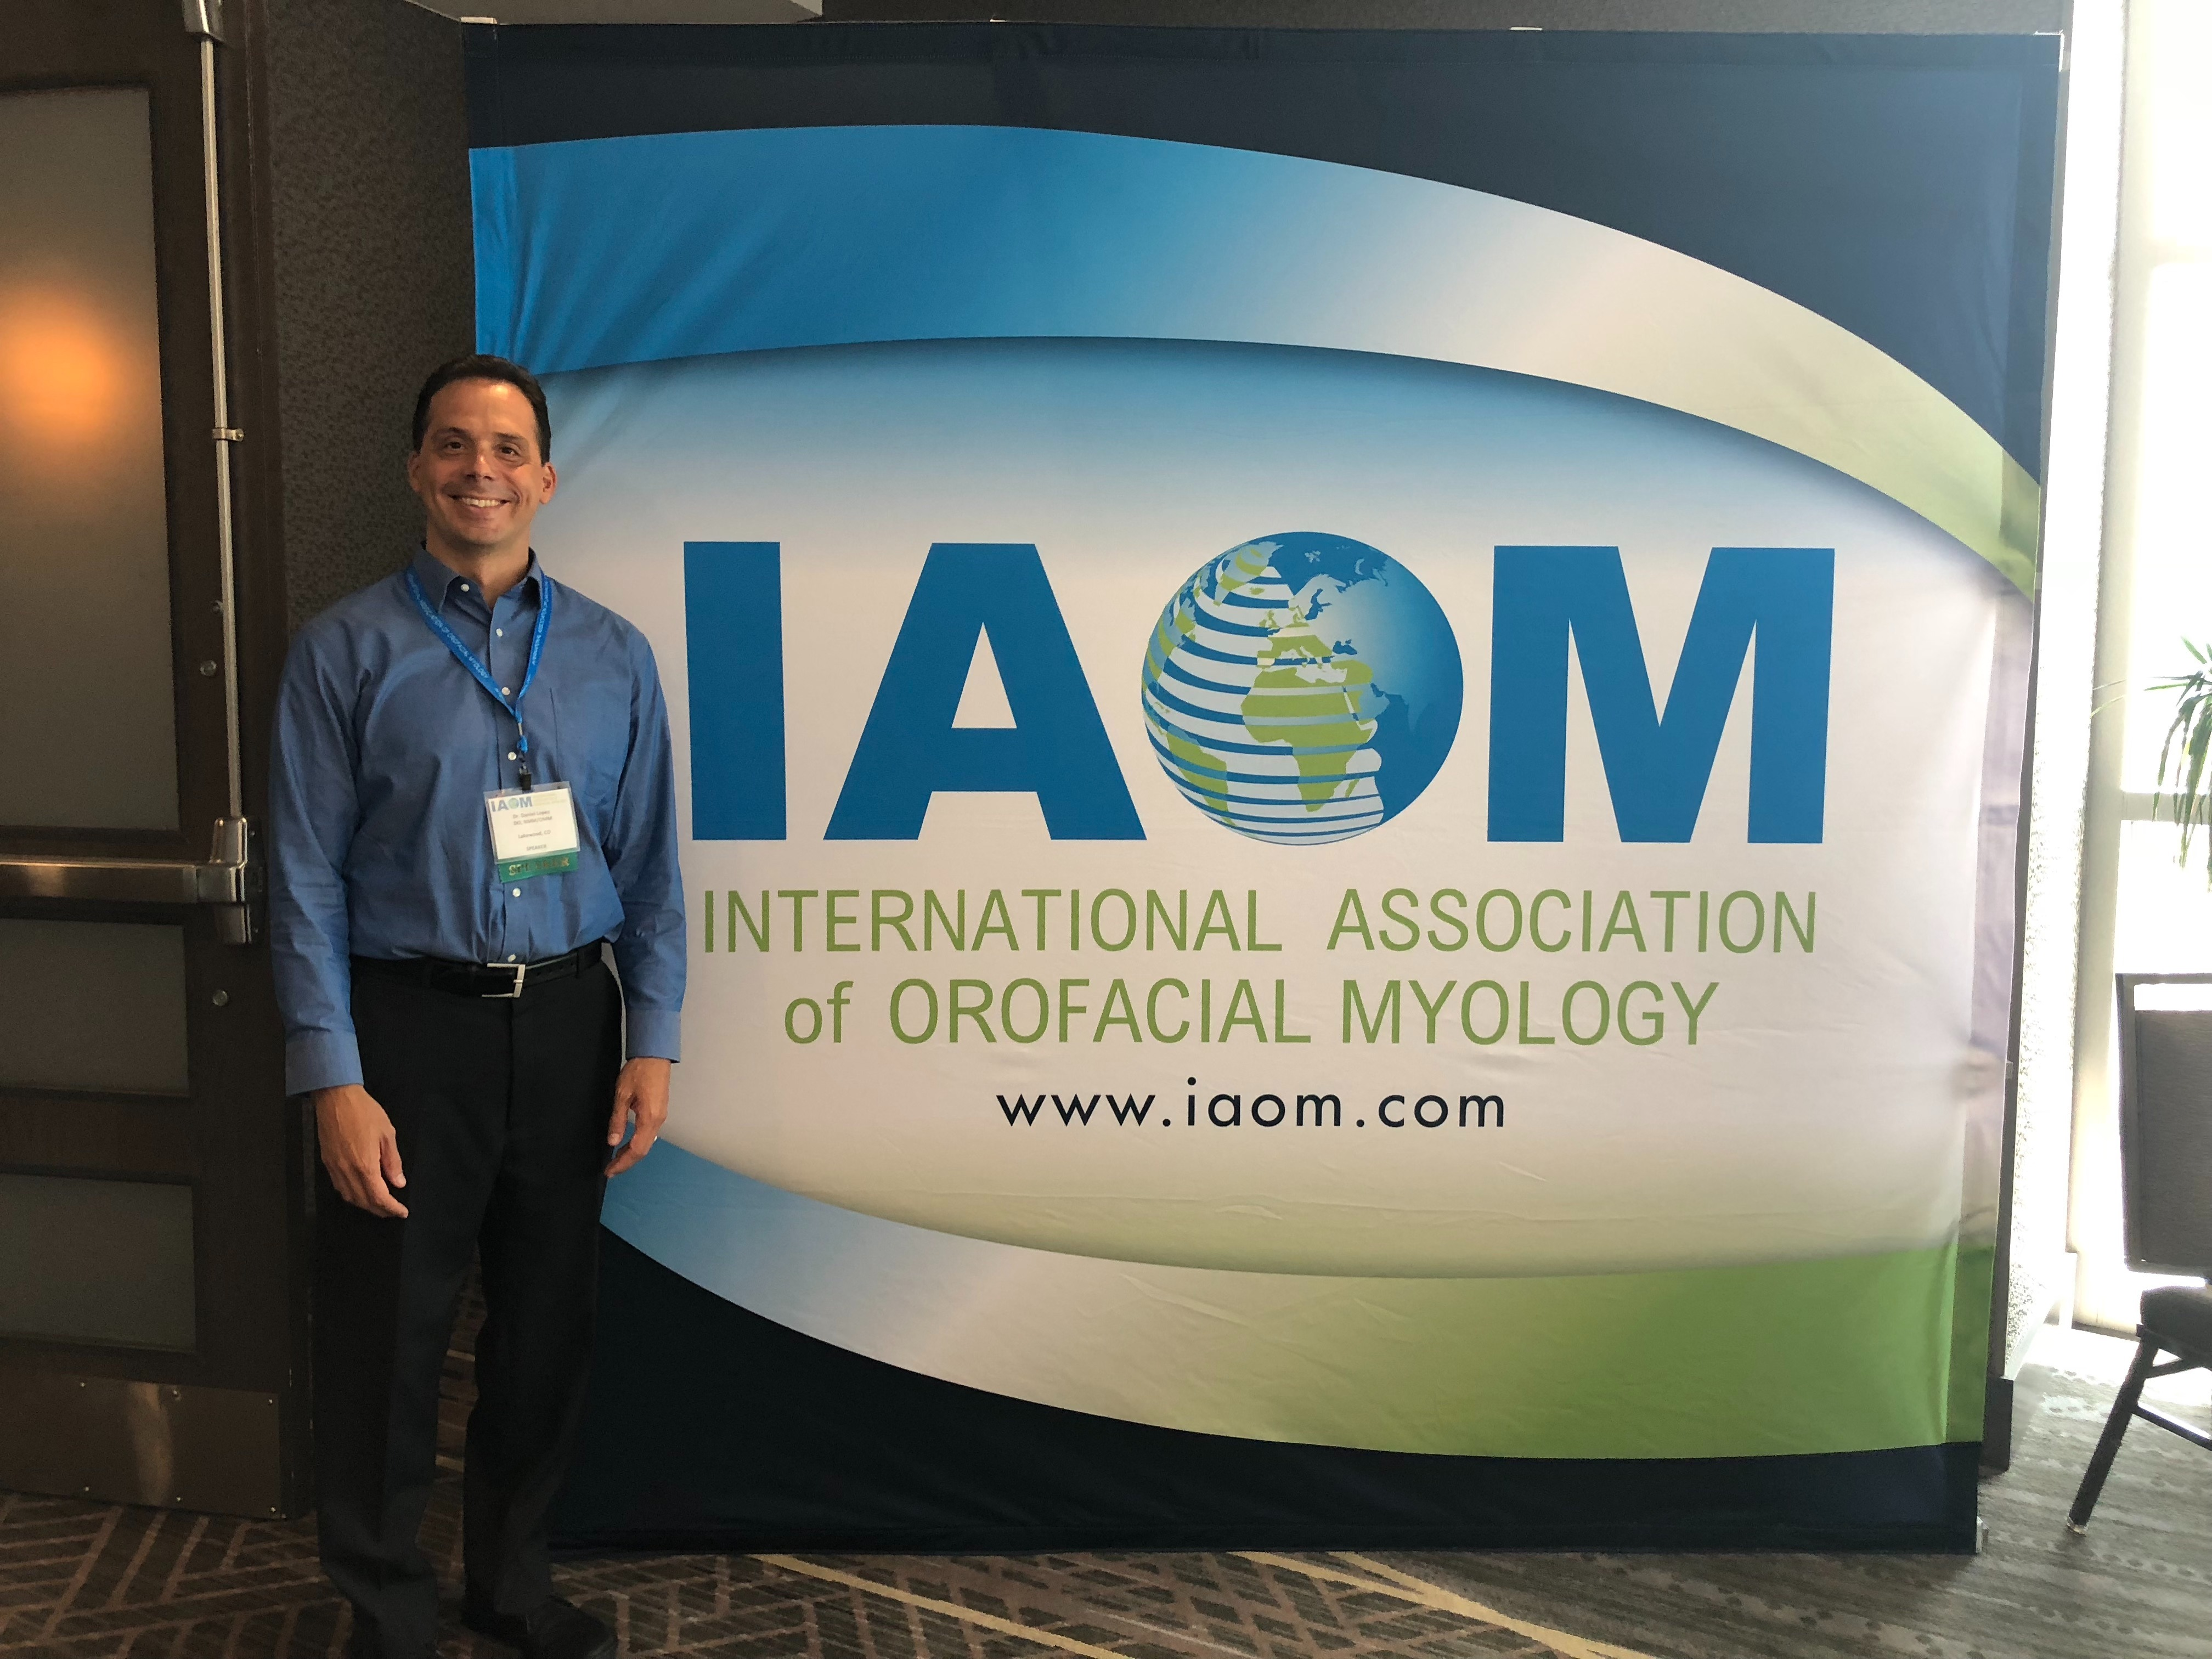 Daniel Lopez, D.O. before speaking at the IAOM in 2018